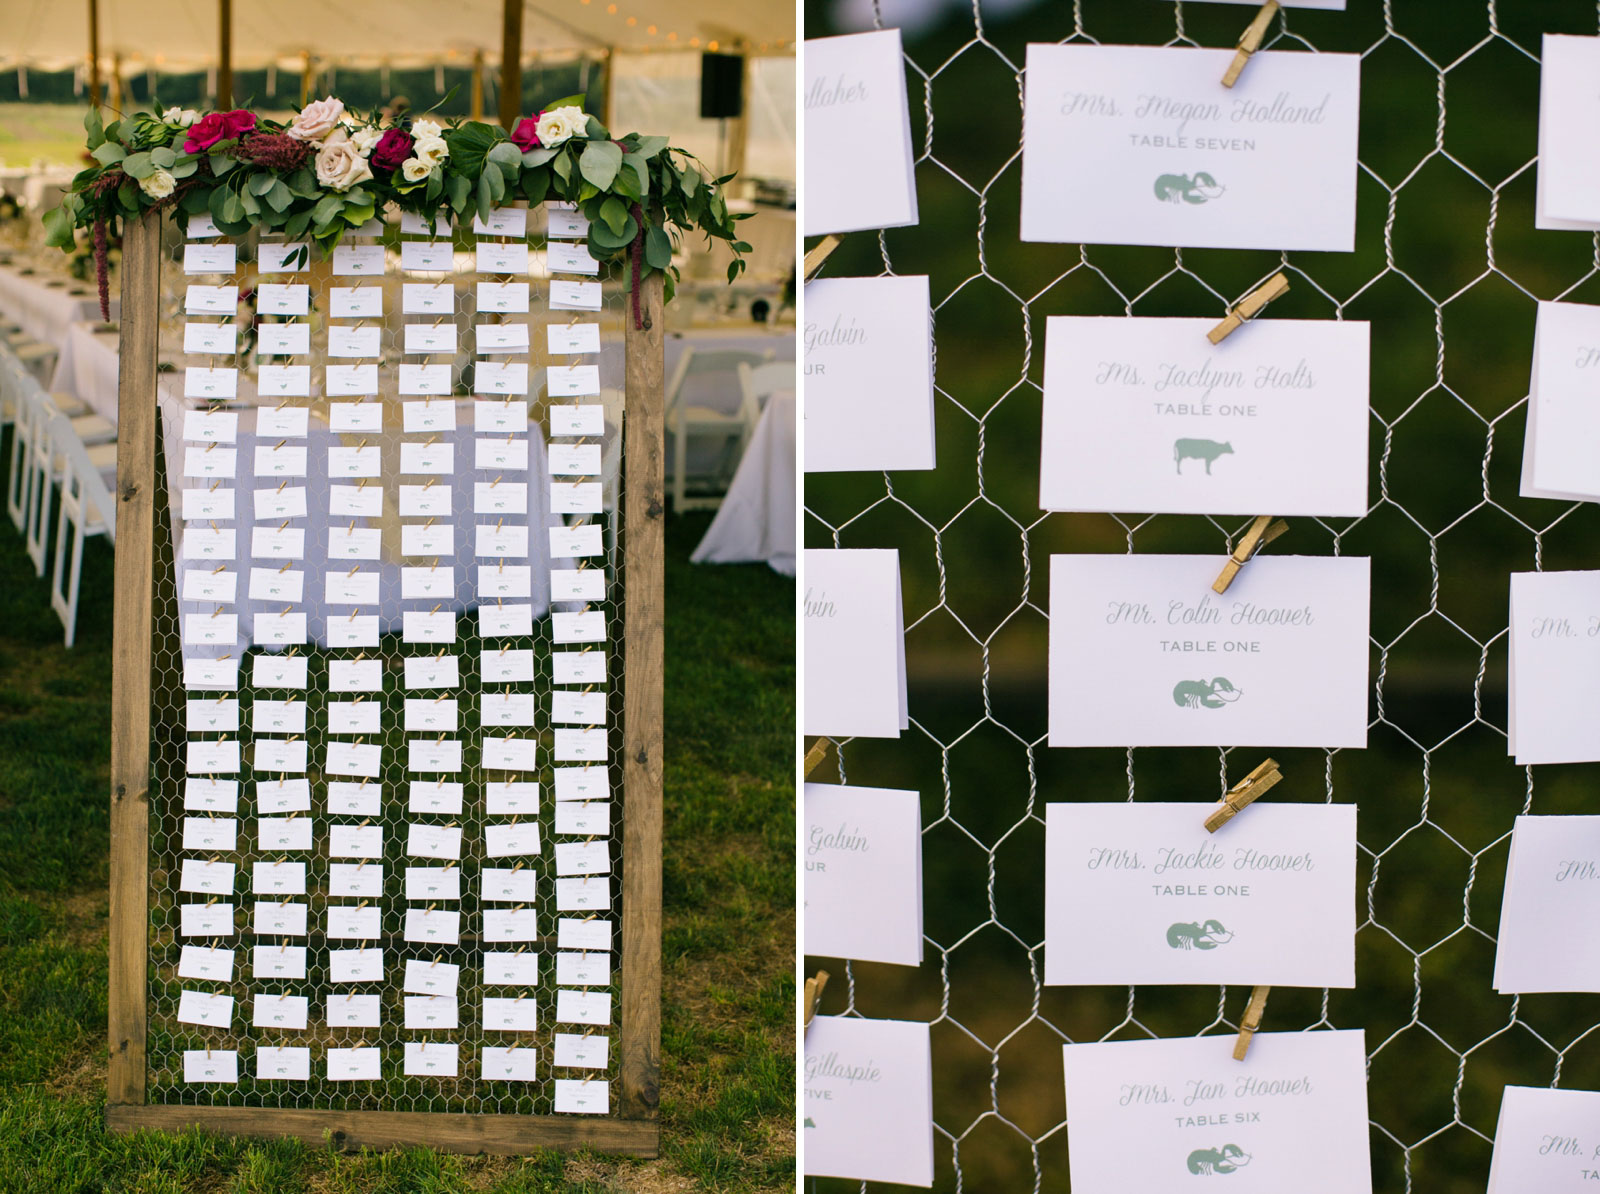 Detail of place cards clothes-pinned to chicken wire, Mr. Colin Hoover, Mrs. Jackie Hoover Table 1